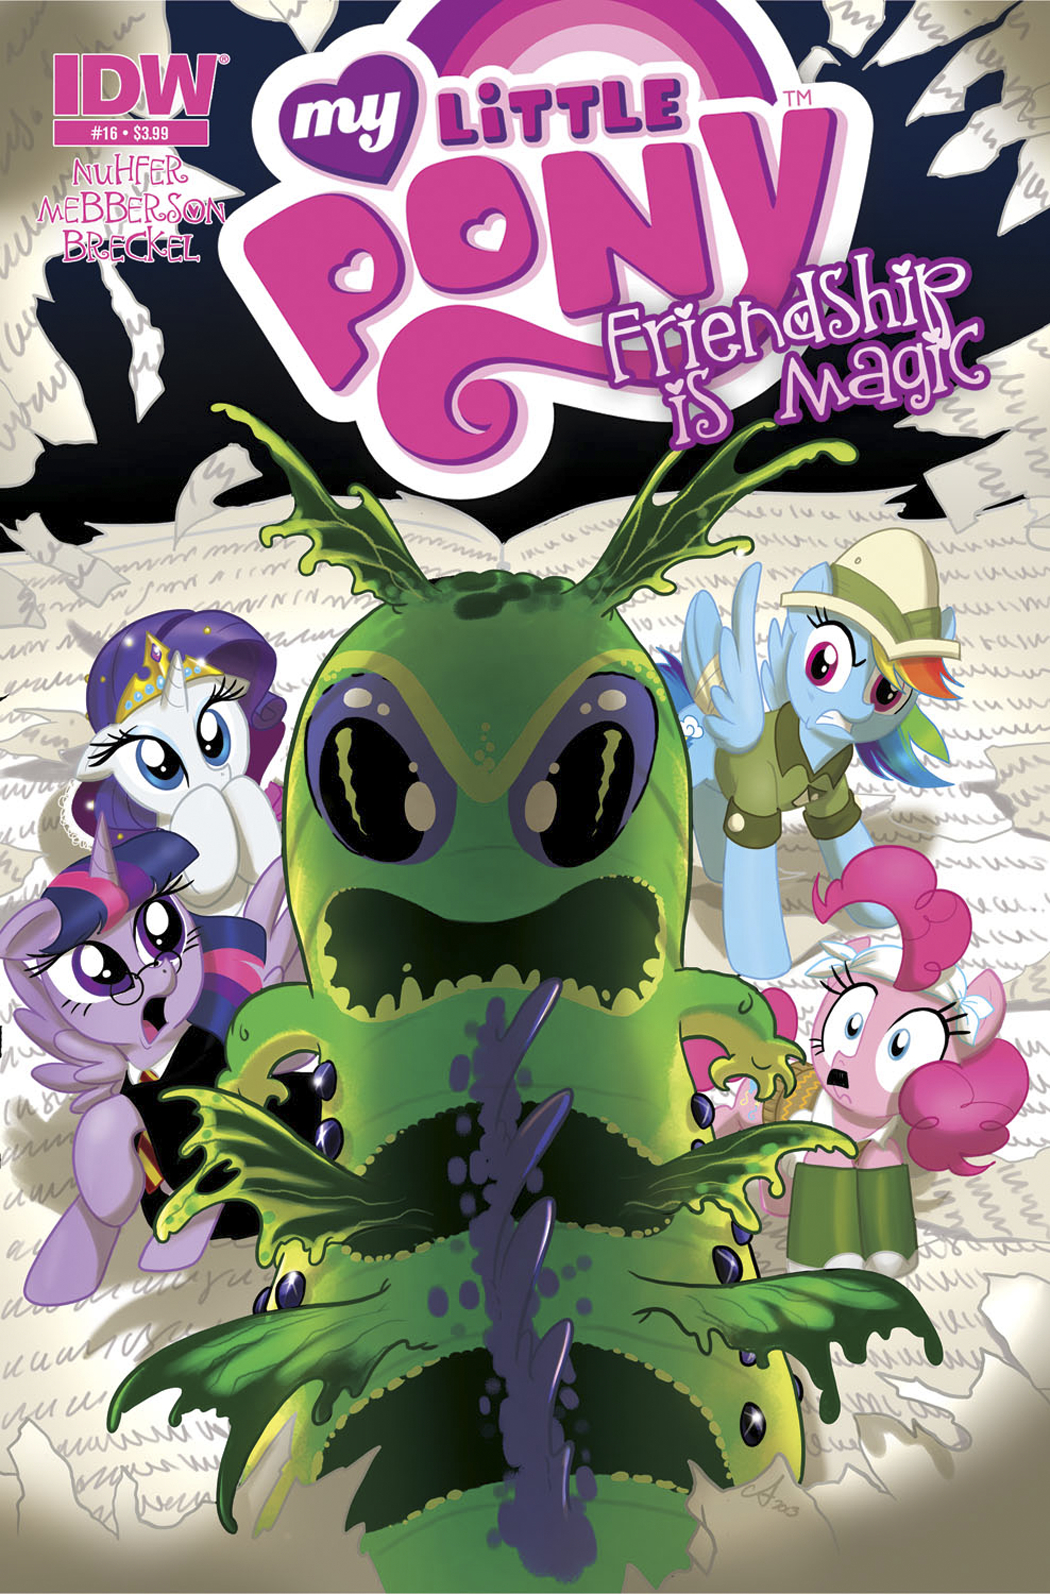 MY LITTLE PONY FRIENDSHIP IS MAGIC #16